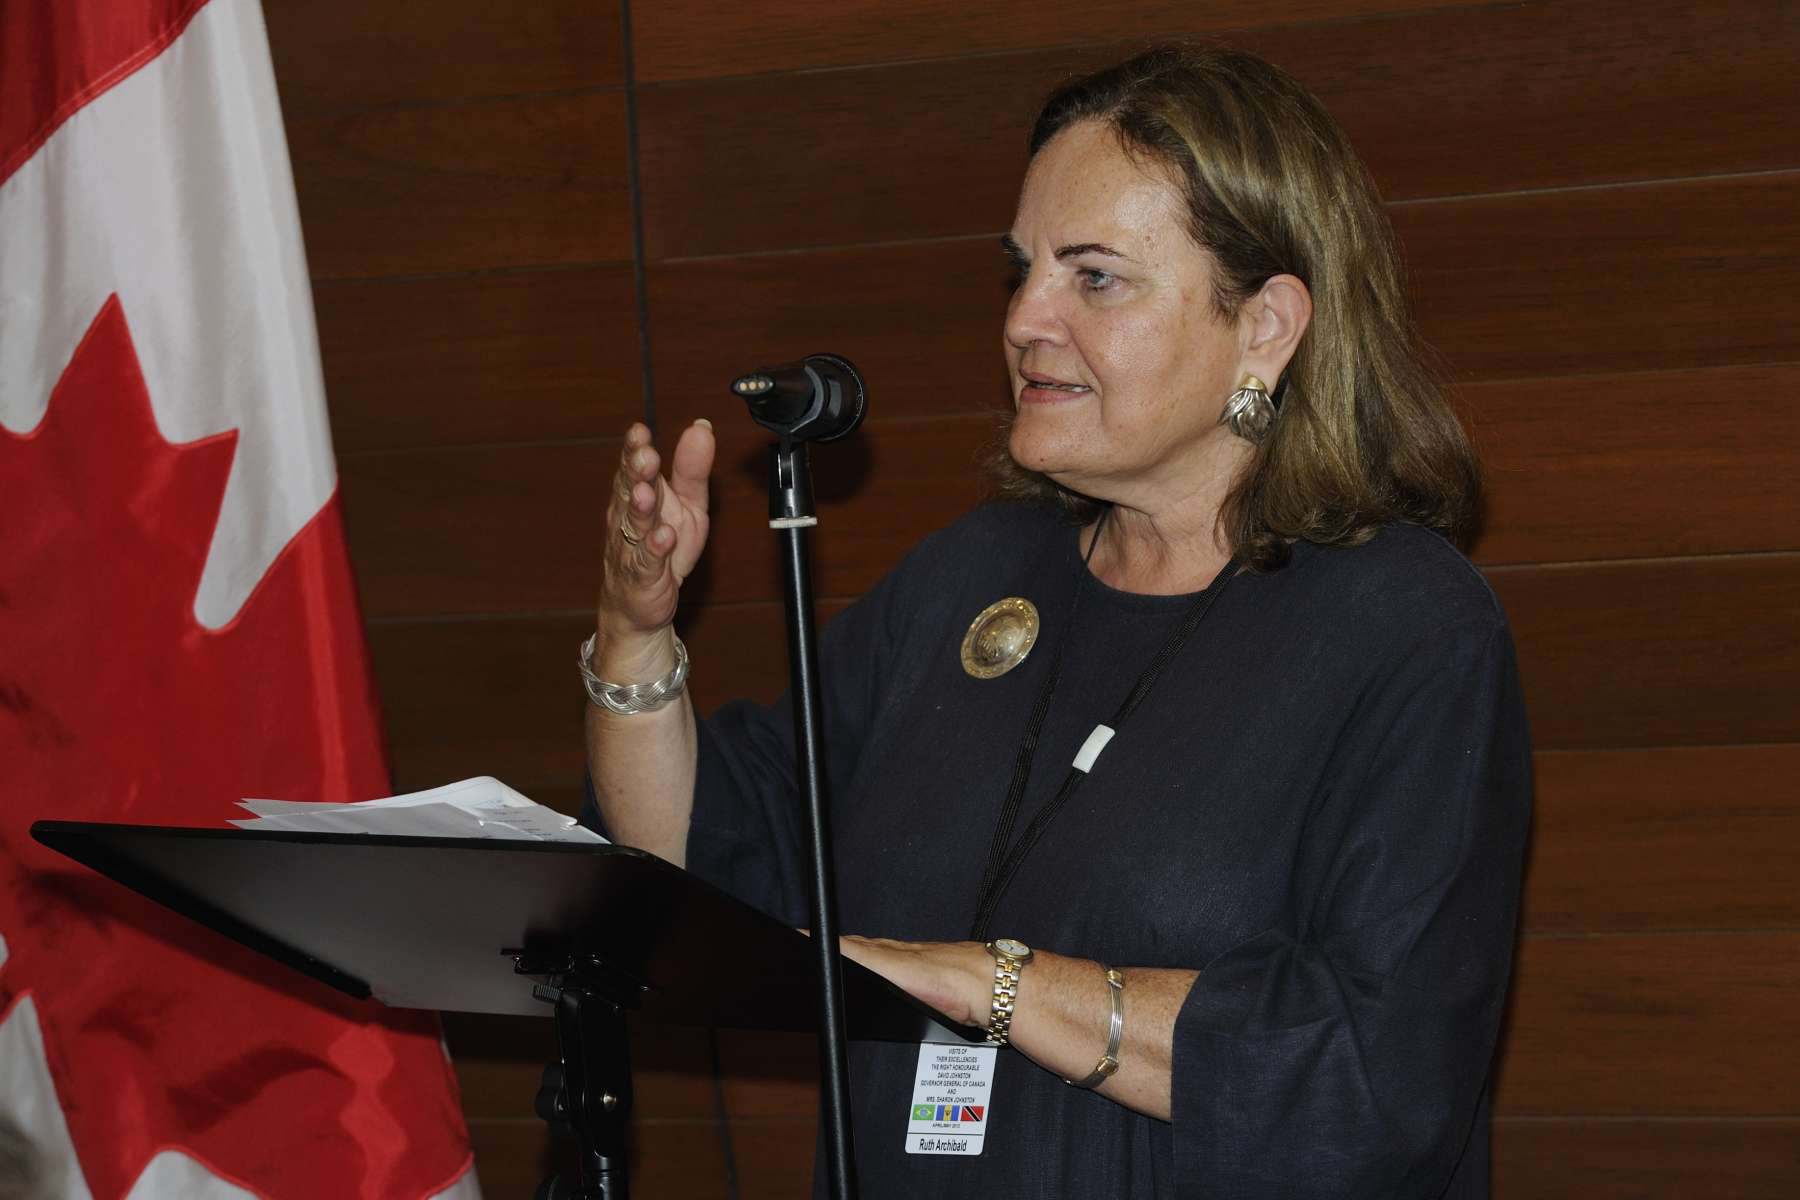 Ms. Ruth Archibald, High Commissioner of Canada, delivered a speech on that occasion. During the event, the guests engaged in an exchange on our two countries' close bilateral relationship through the Commonwealth, the United Nations and the Organization of American State.